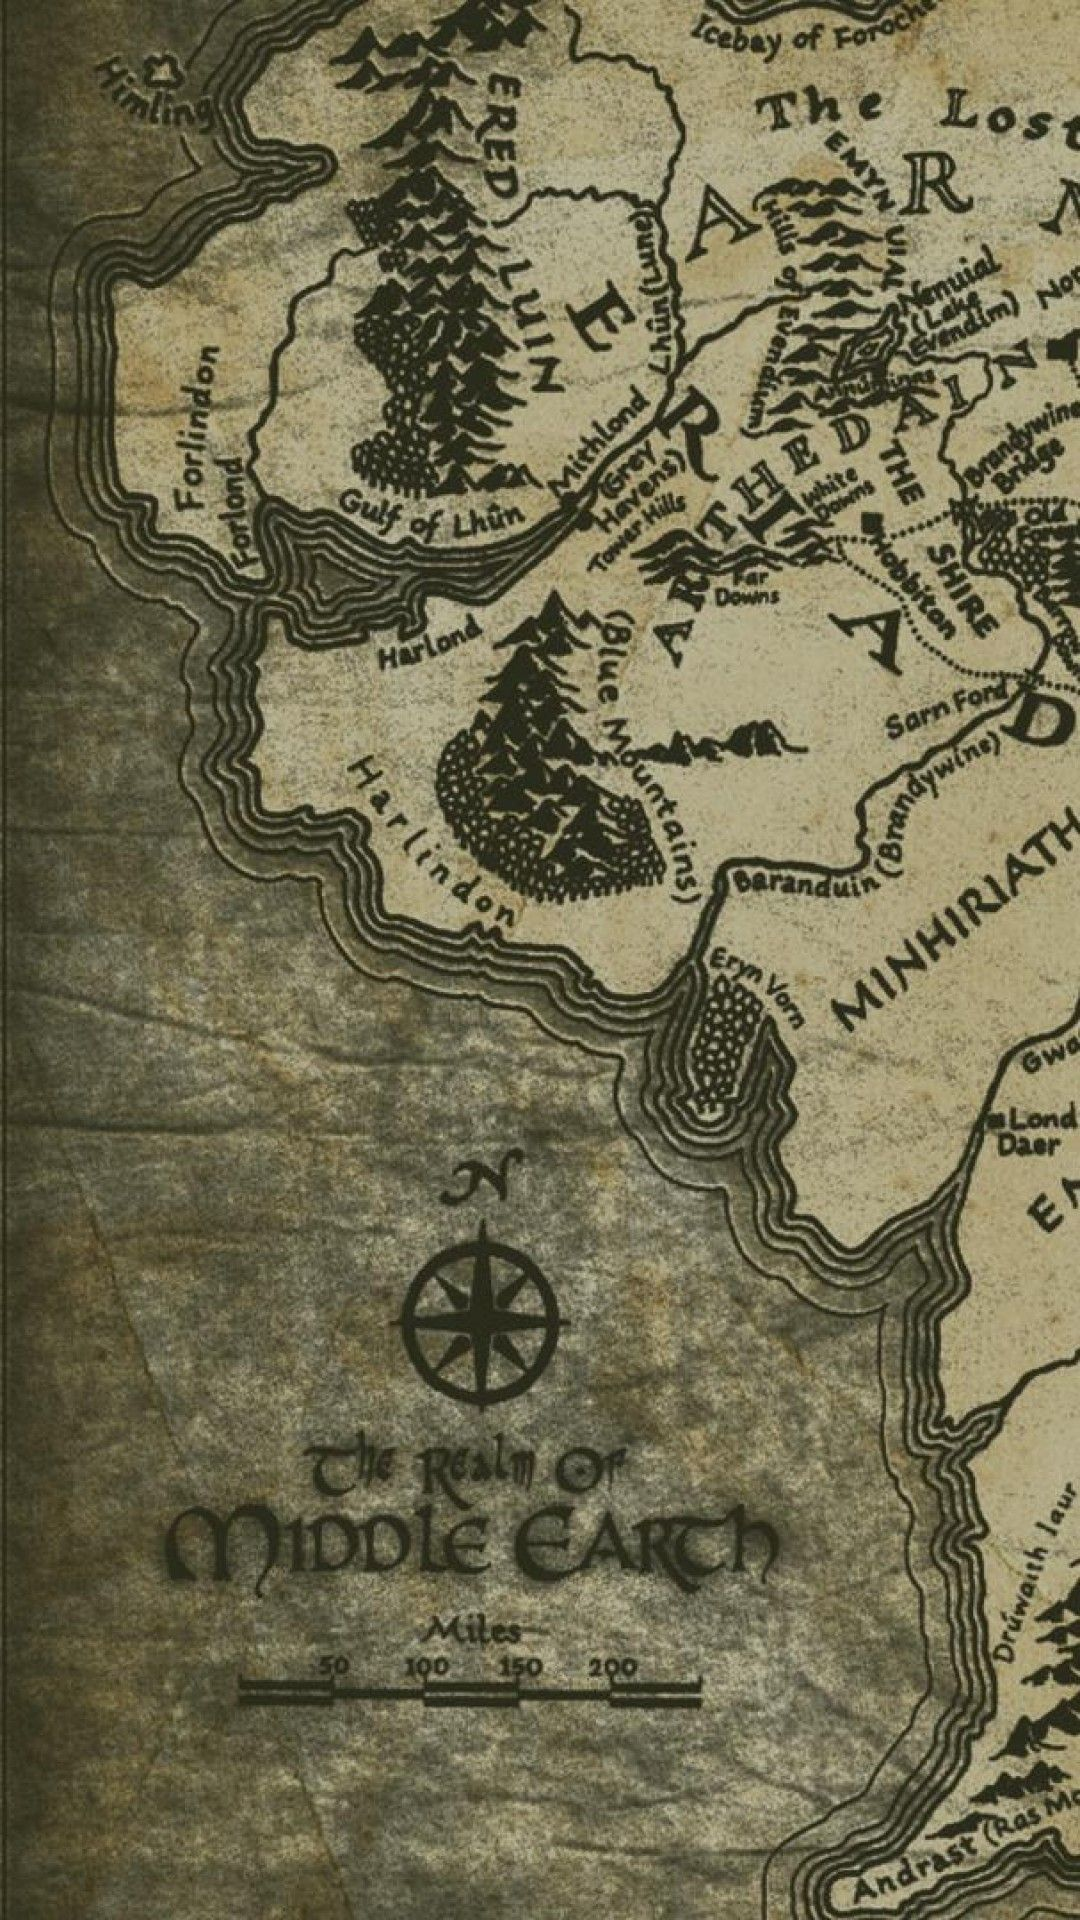 Lord Of The Rings Map Iphone Wallpaper In 2020 The Hobbit Lord Of The Rings Middle Earth Map